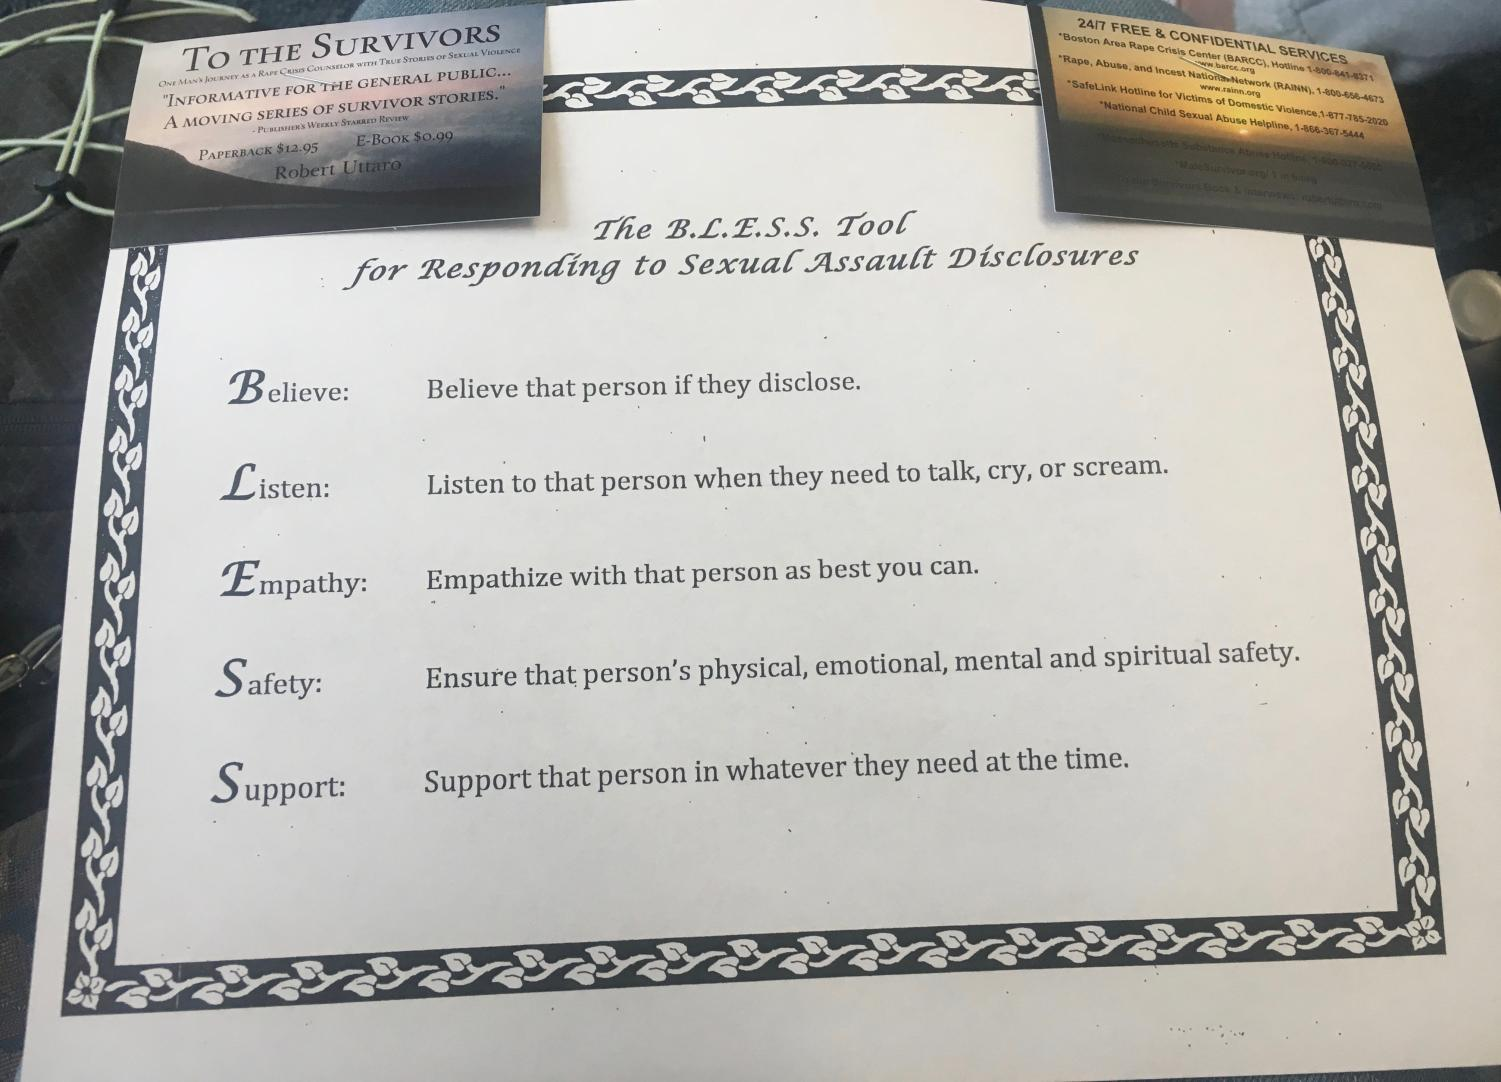 Rape crisis counselor and author Robert Uttaro distributed this handout to students during his presentation to aid students who may come in contact with a sexual assault victim. MURIEL STATMAN/SAGAMORE STAFF